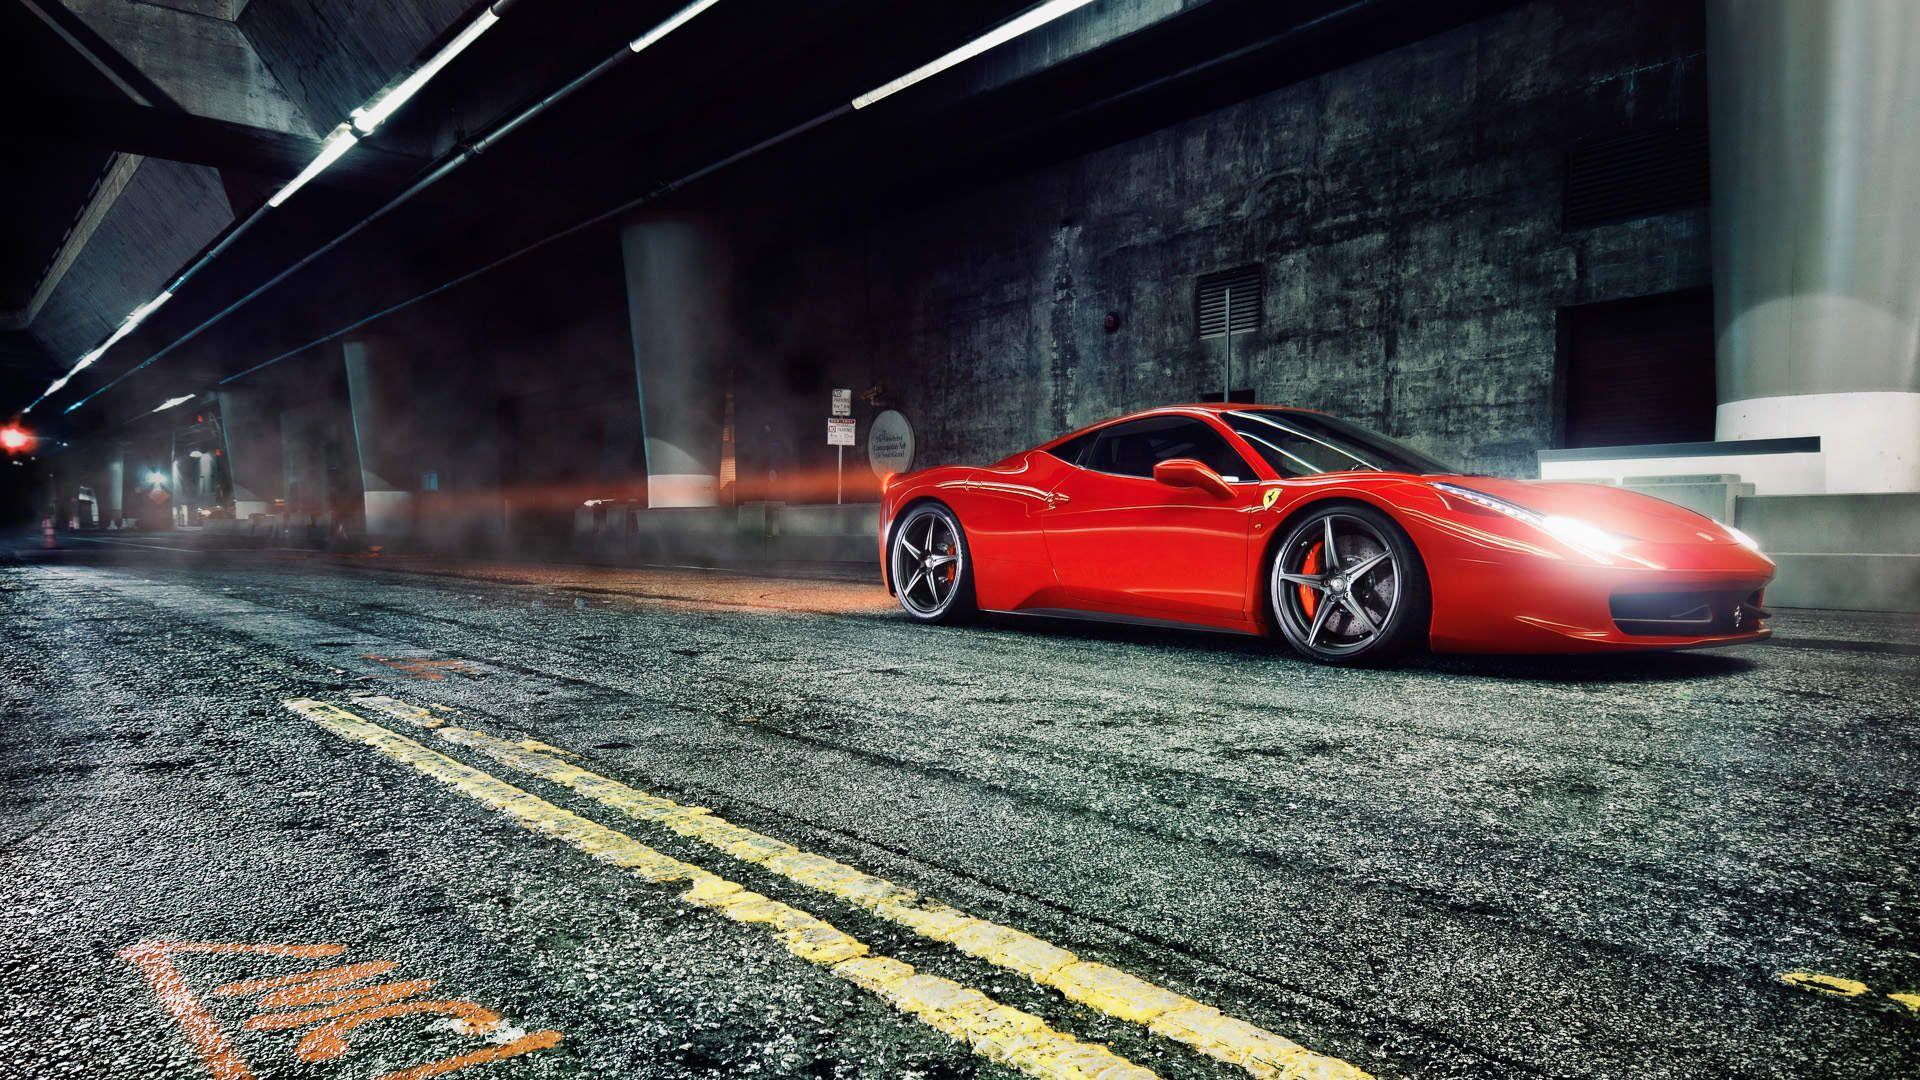 The Most Beautiful Automotive Photography You Ll See This Year Ferrari Wallpaper Automotive Photography Ferrari 458